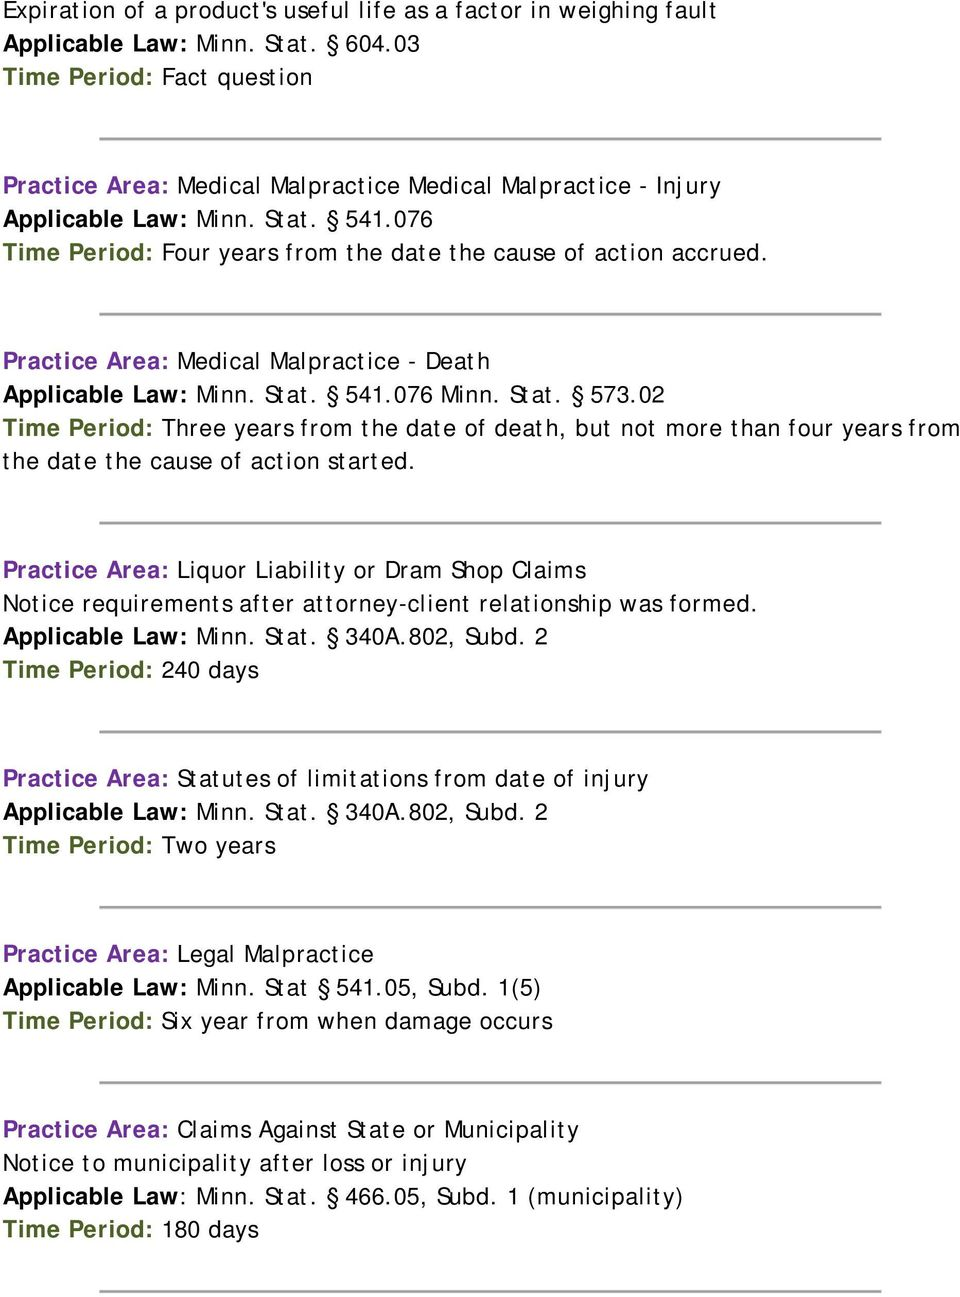 Practice Area: Medical Malpractice - Death Applicable Law: Minn. Stat. 541.076 Minn. Stat. 573.